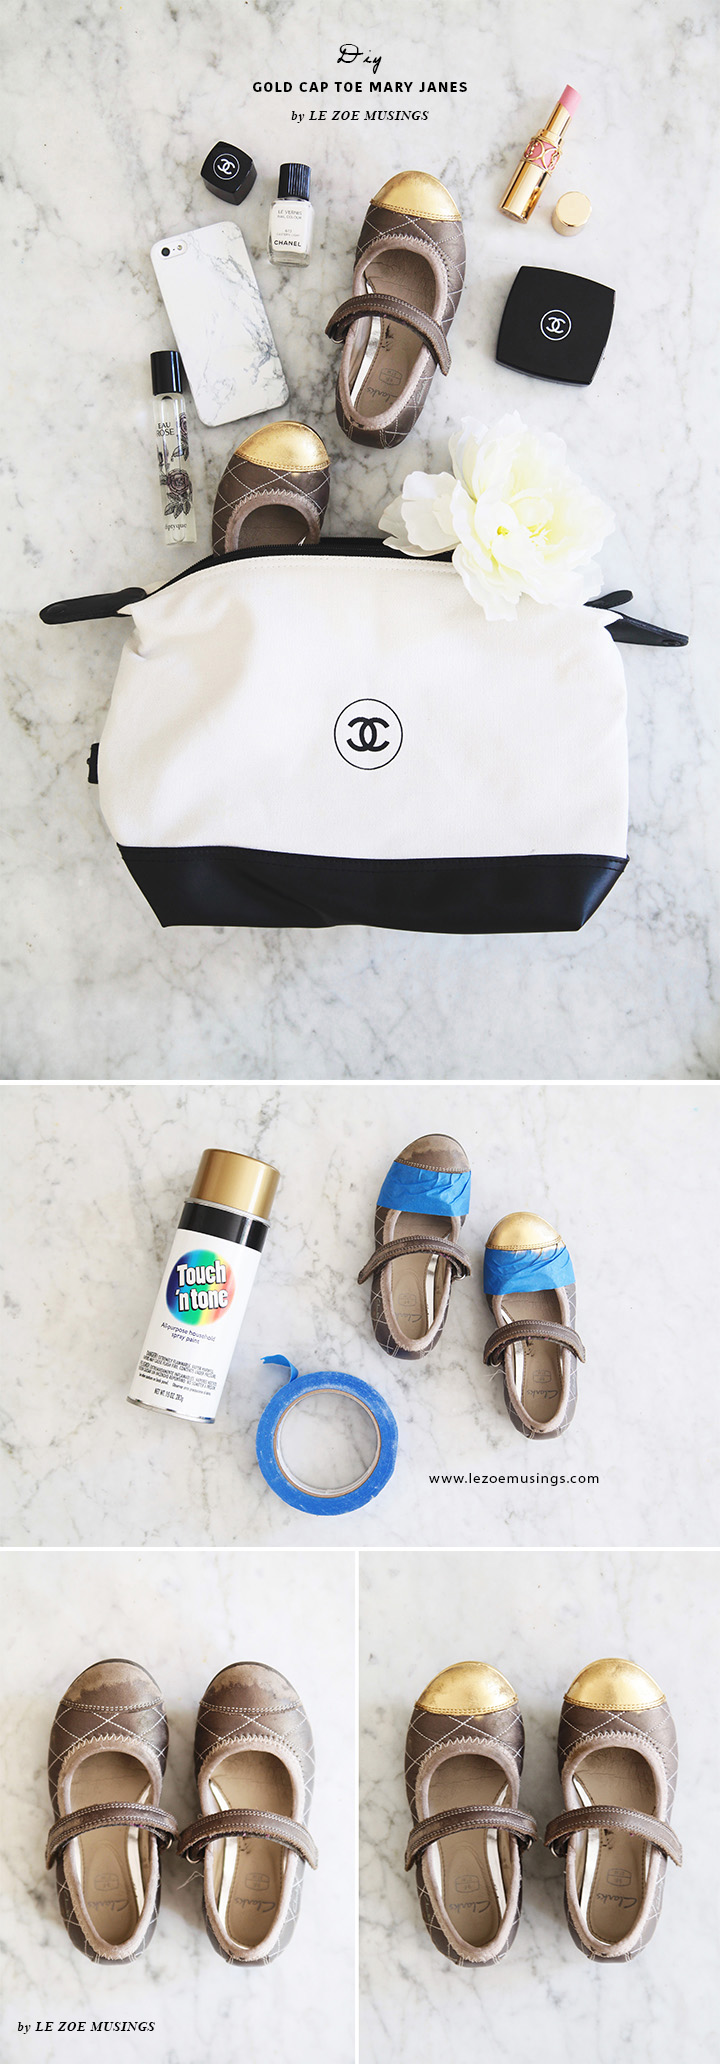 DIY Gold Cap Toe Mary Janes by Le Zoe Musings4